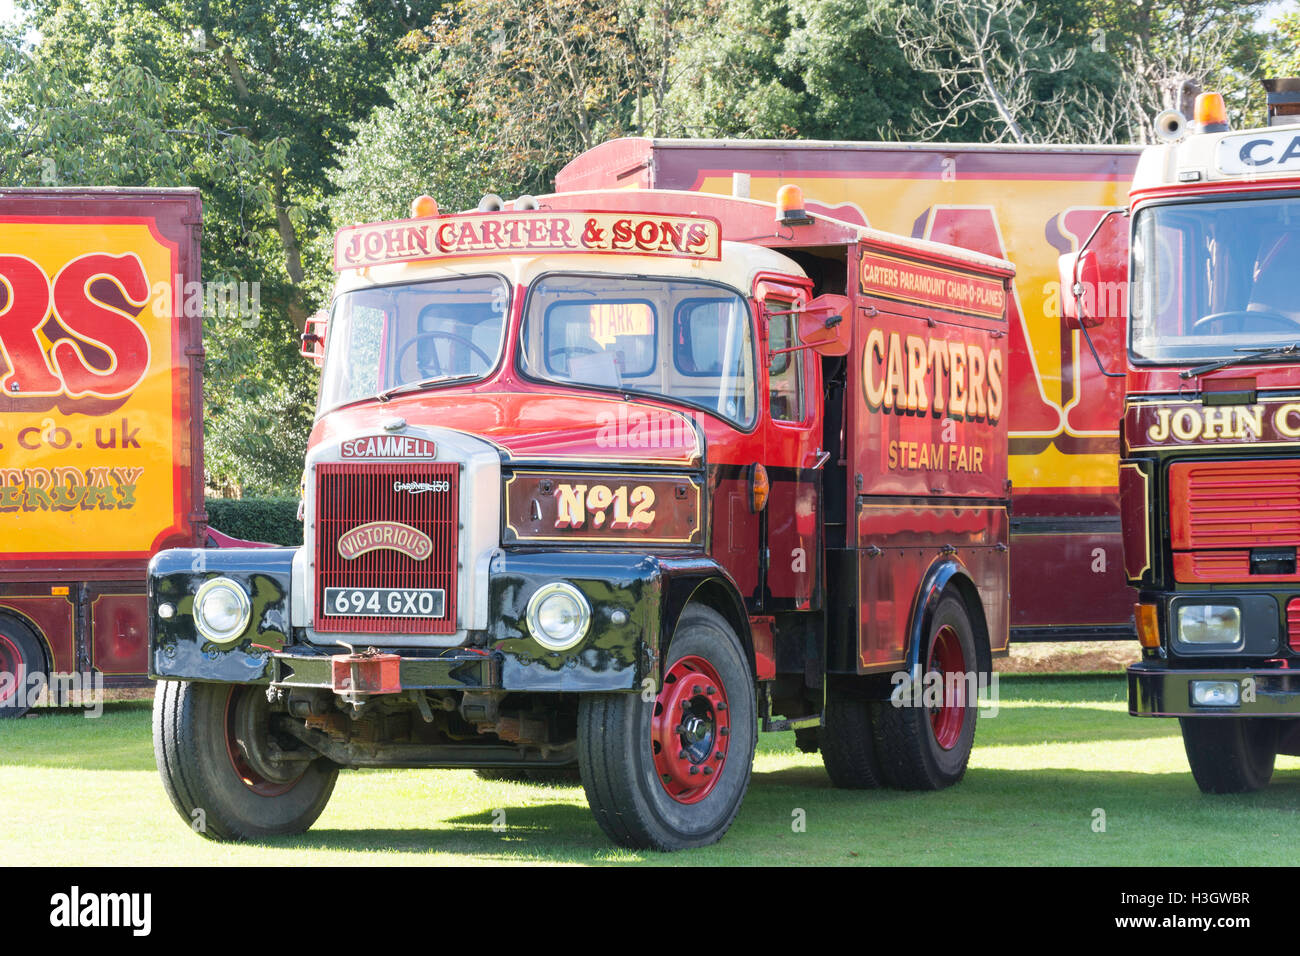 Vintage Scammell truck at Vintage Carters Steam Fair, The Green, Englefield Green, Surrey, England, United Kingdom - Stock Image